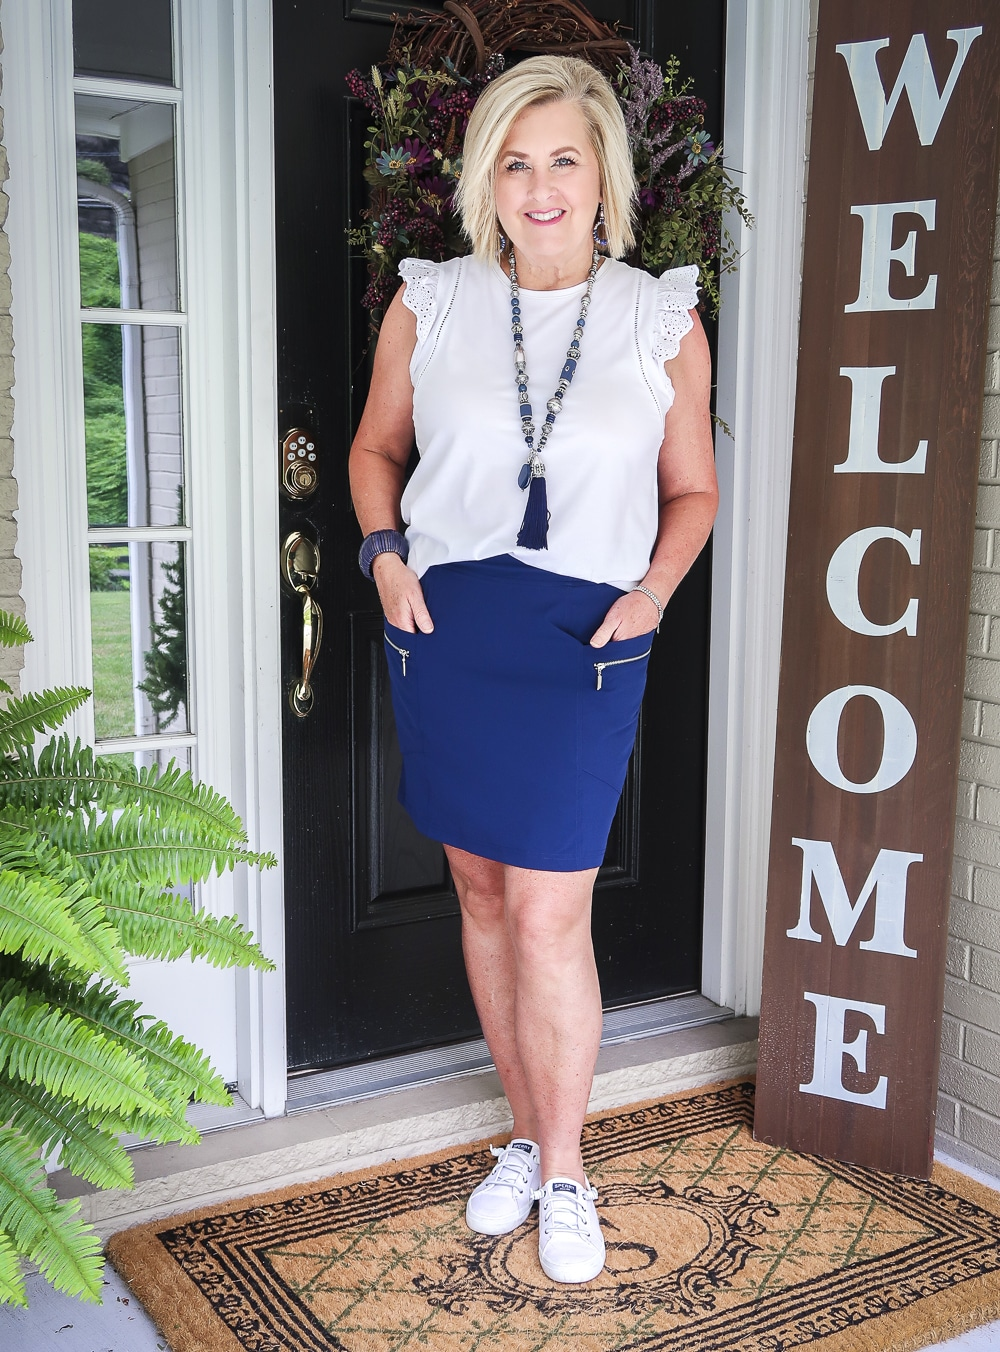 Fashion Blogger 50 Is Not Old is wearing an eyelet flutter sleeve top with a navy skort with zippers and a pair of Sperry no-tie sneakers